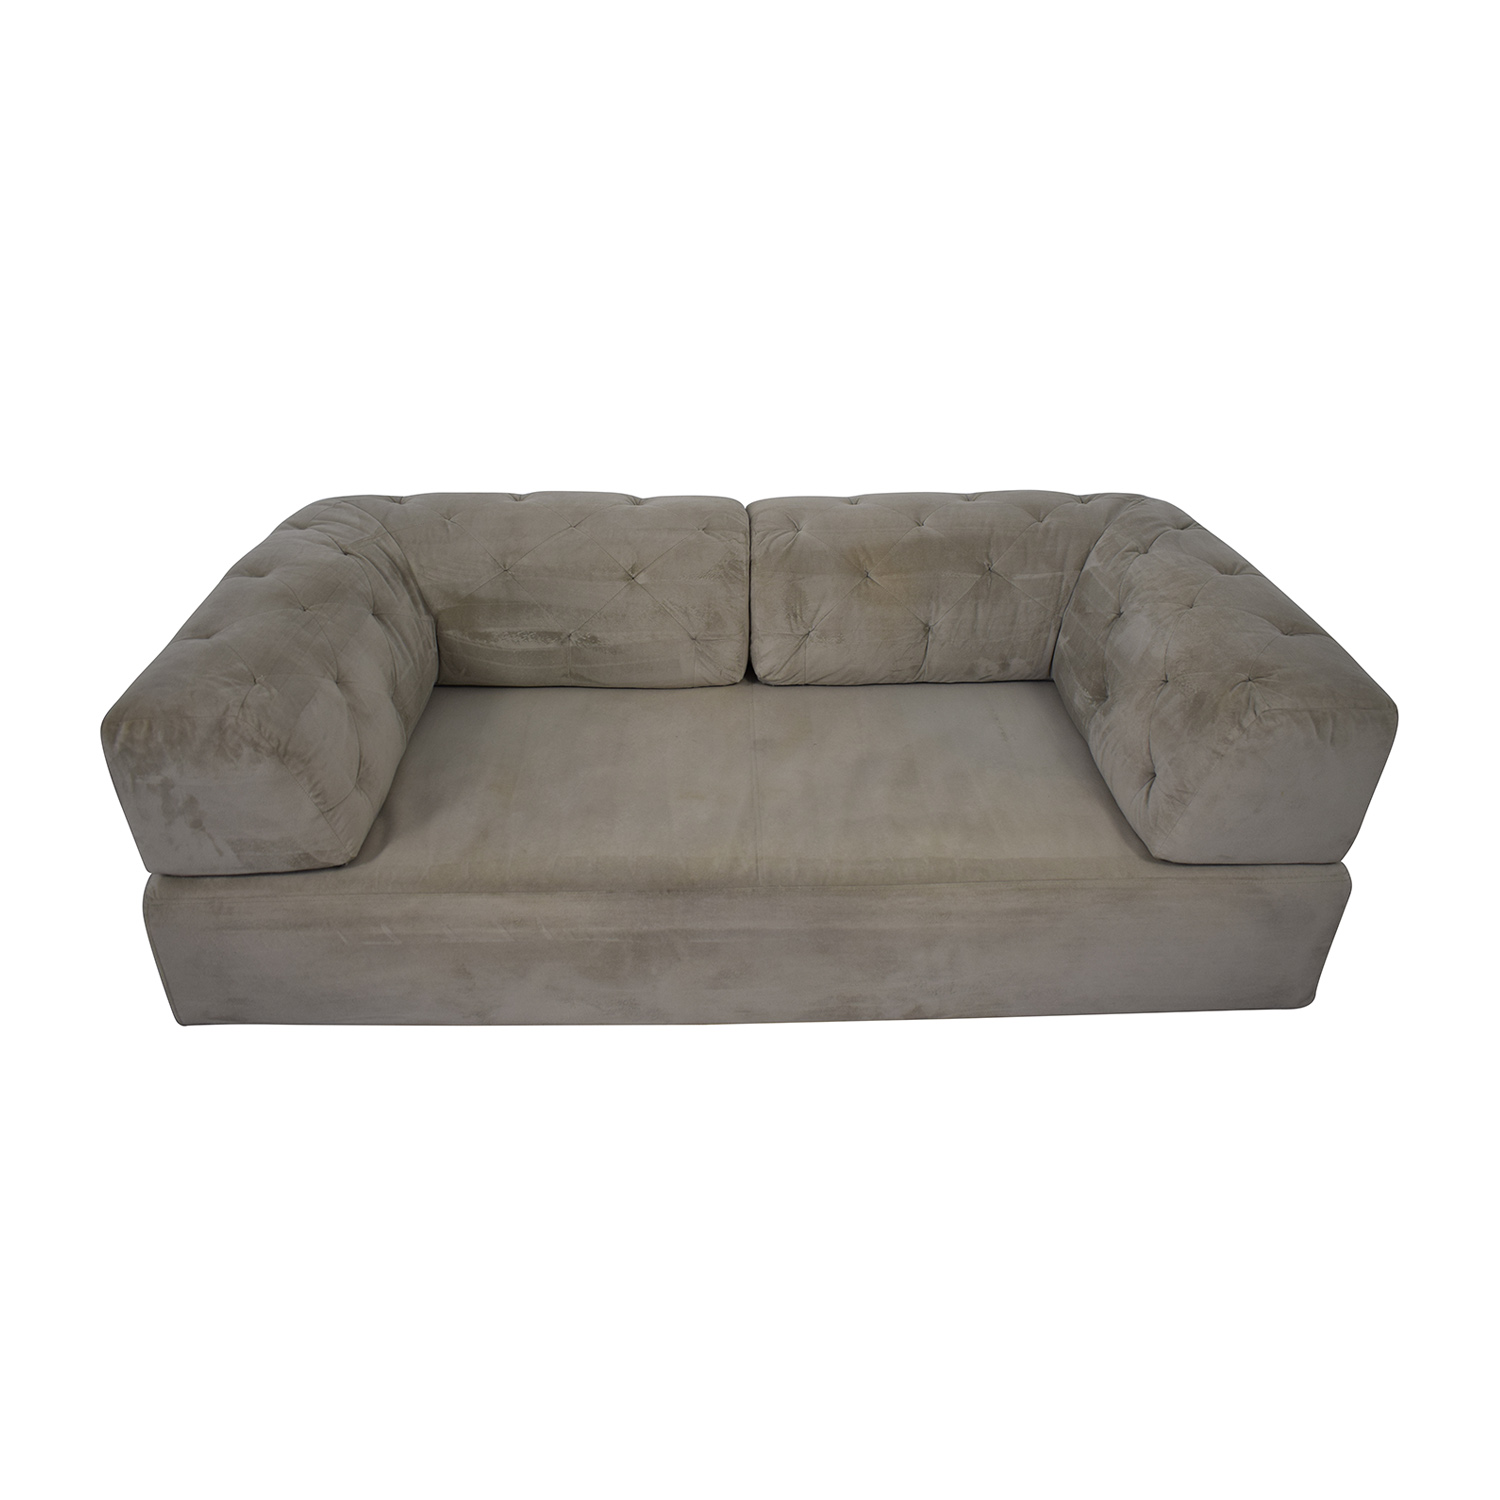 West Elm Tillary Tufted Sofa with Two Corner Cushions sale